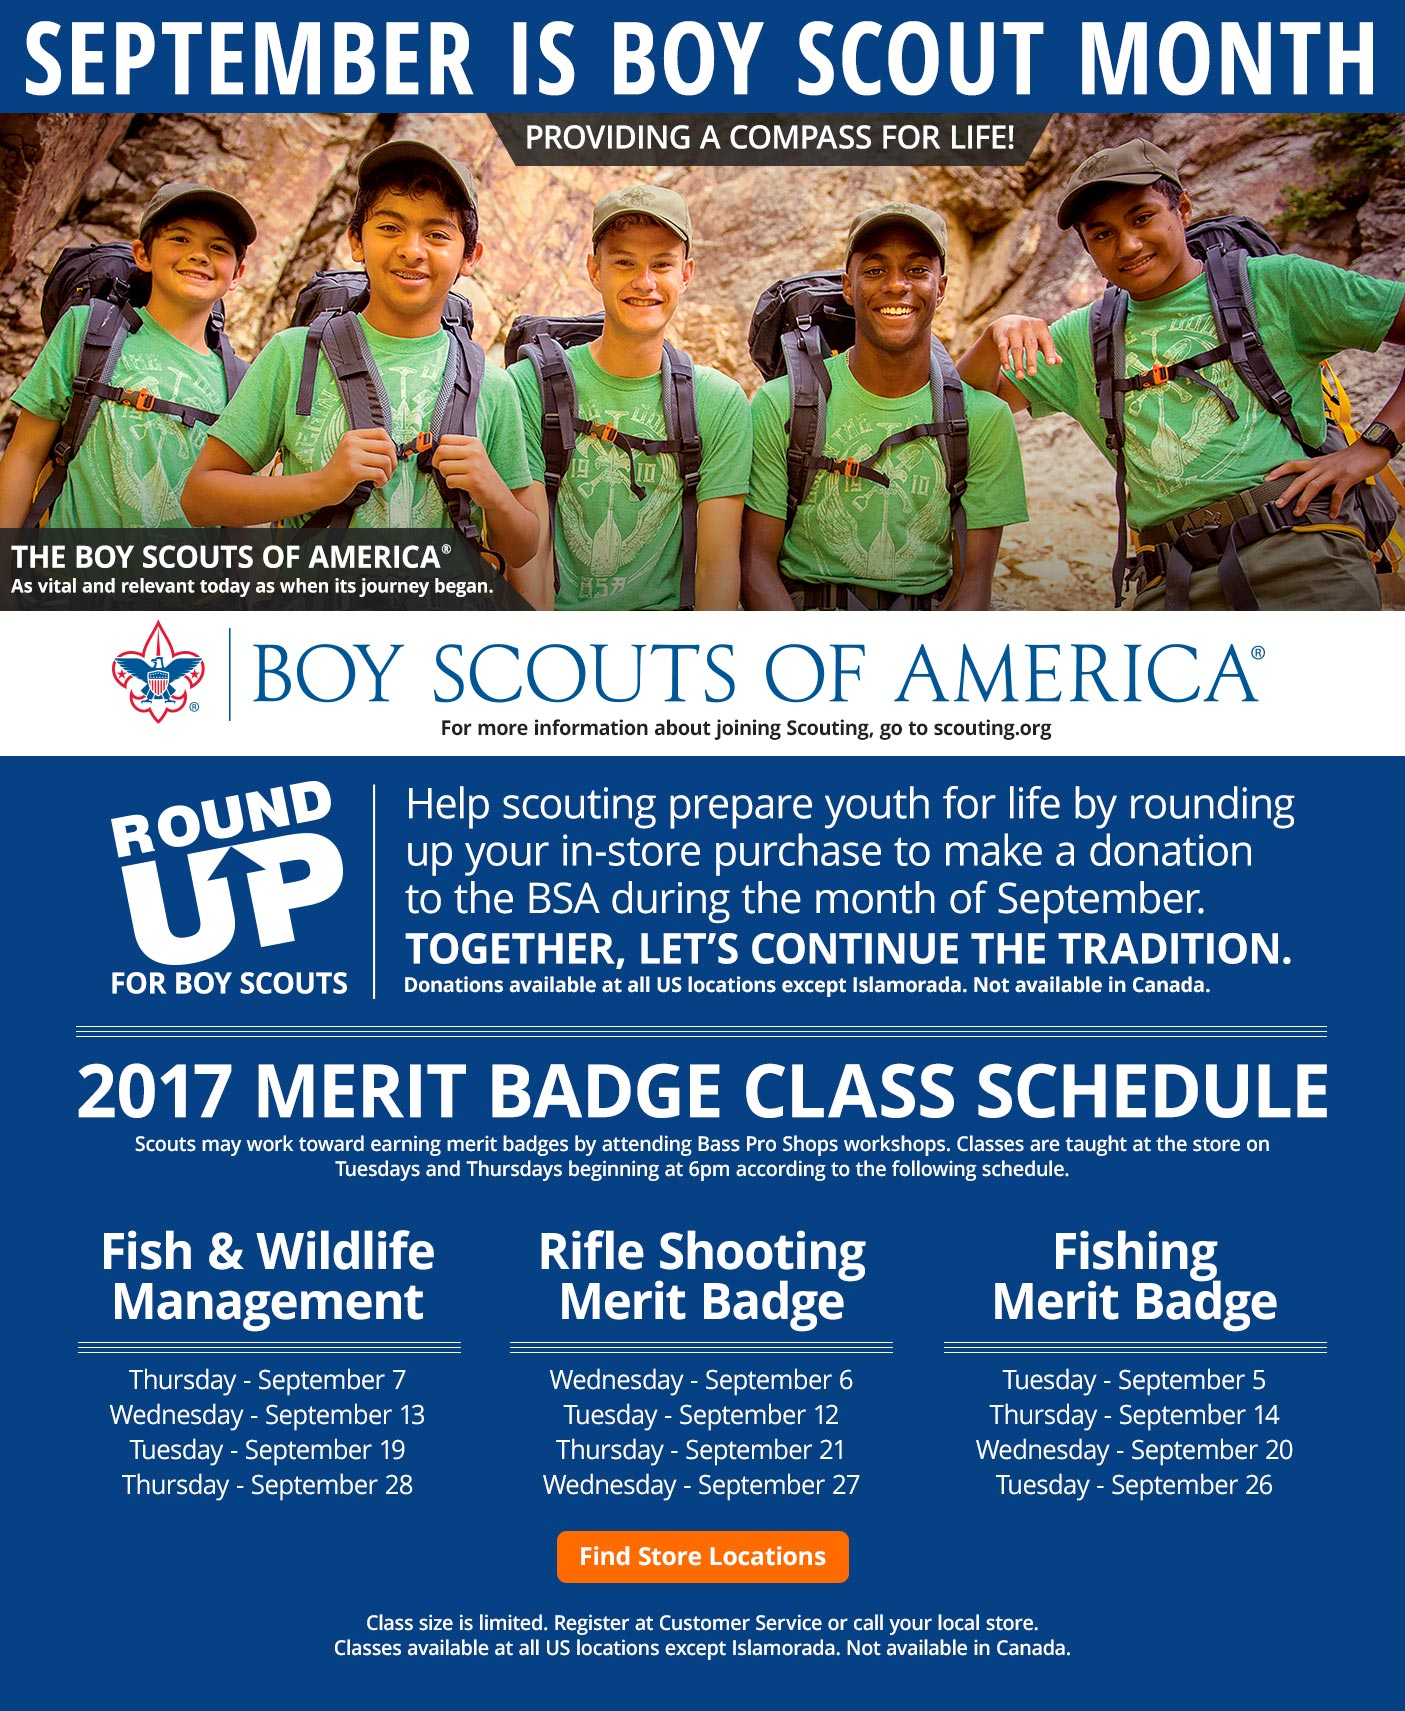 September Is Boy Scout Month - Find Store Locations